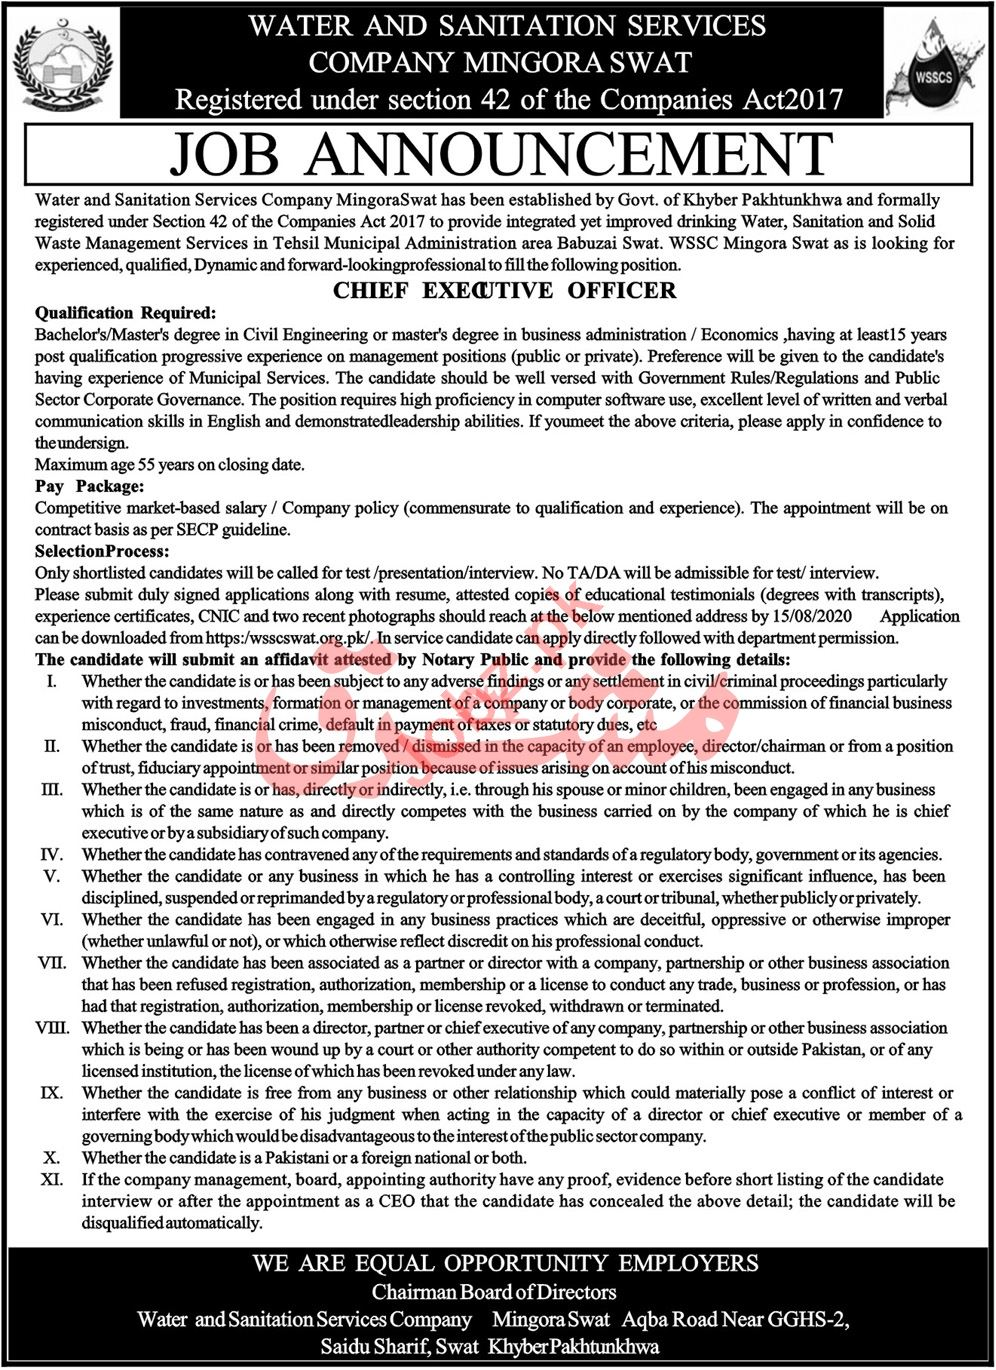 Water & Sanitation Services Company WSSC Swat Jobs for CEO